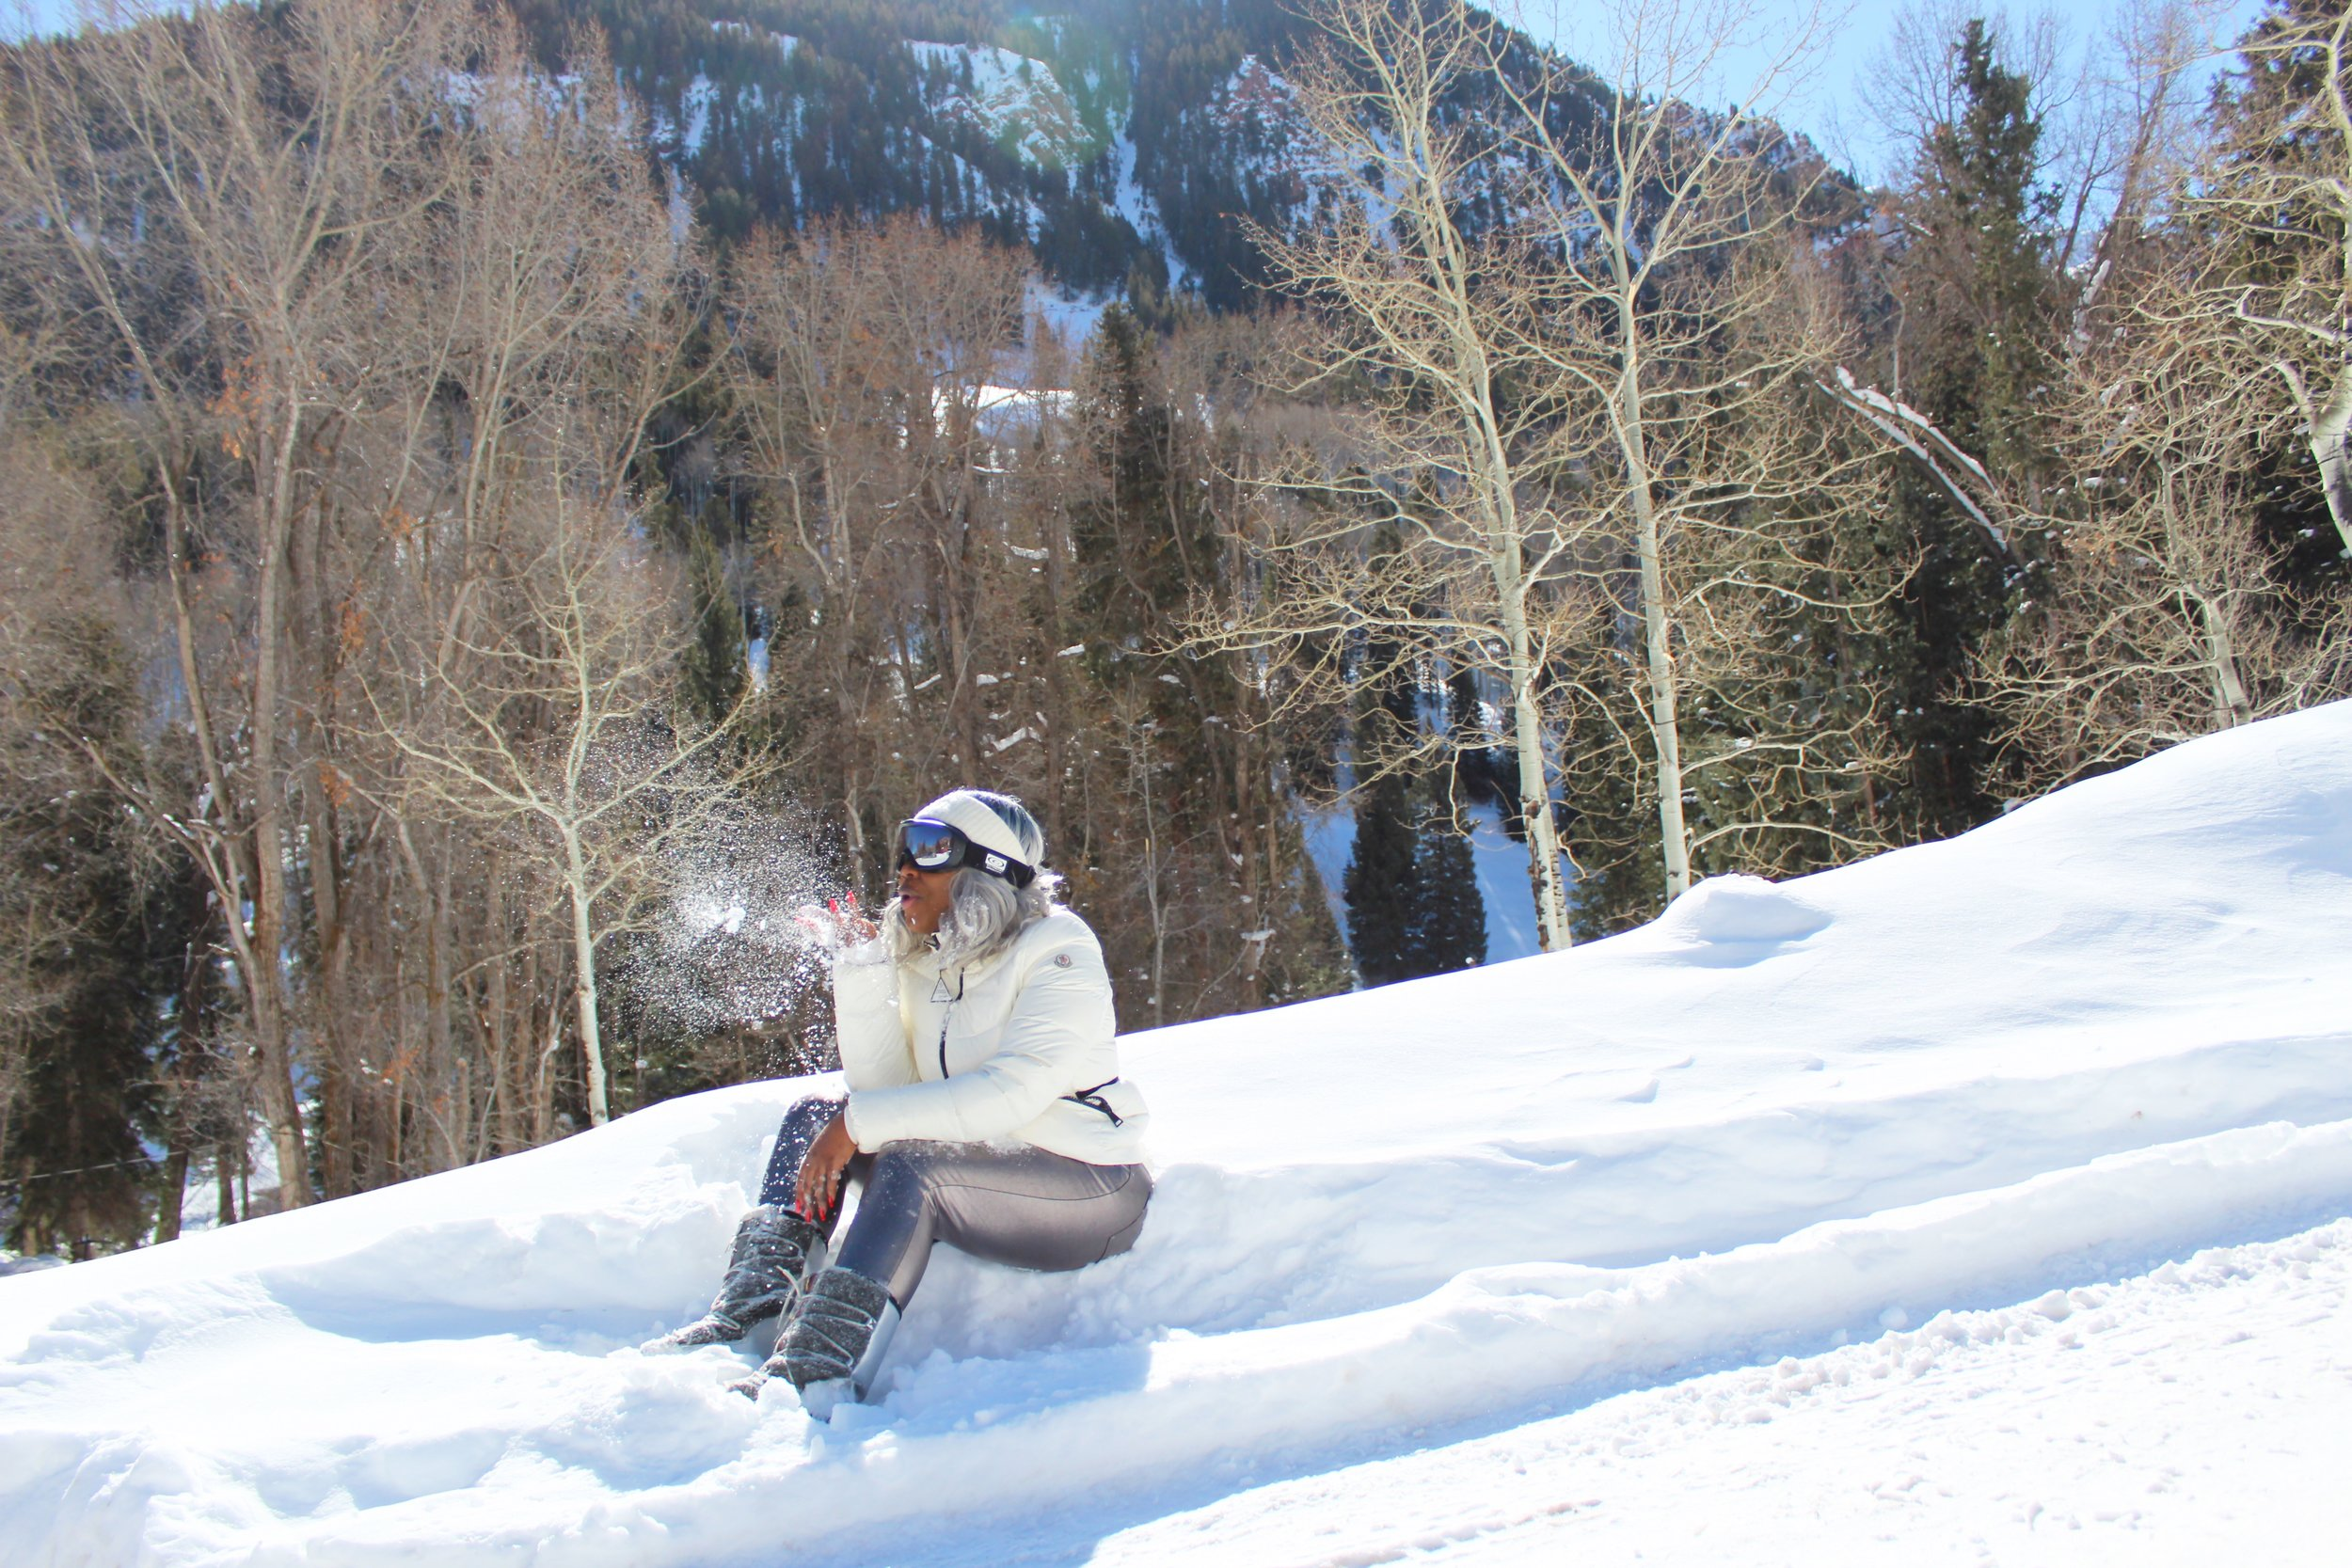 That's me blowing away my funds in Aspen